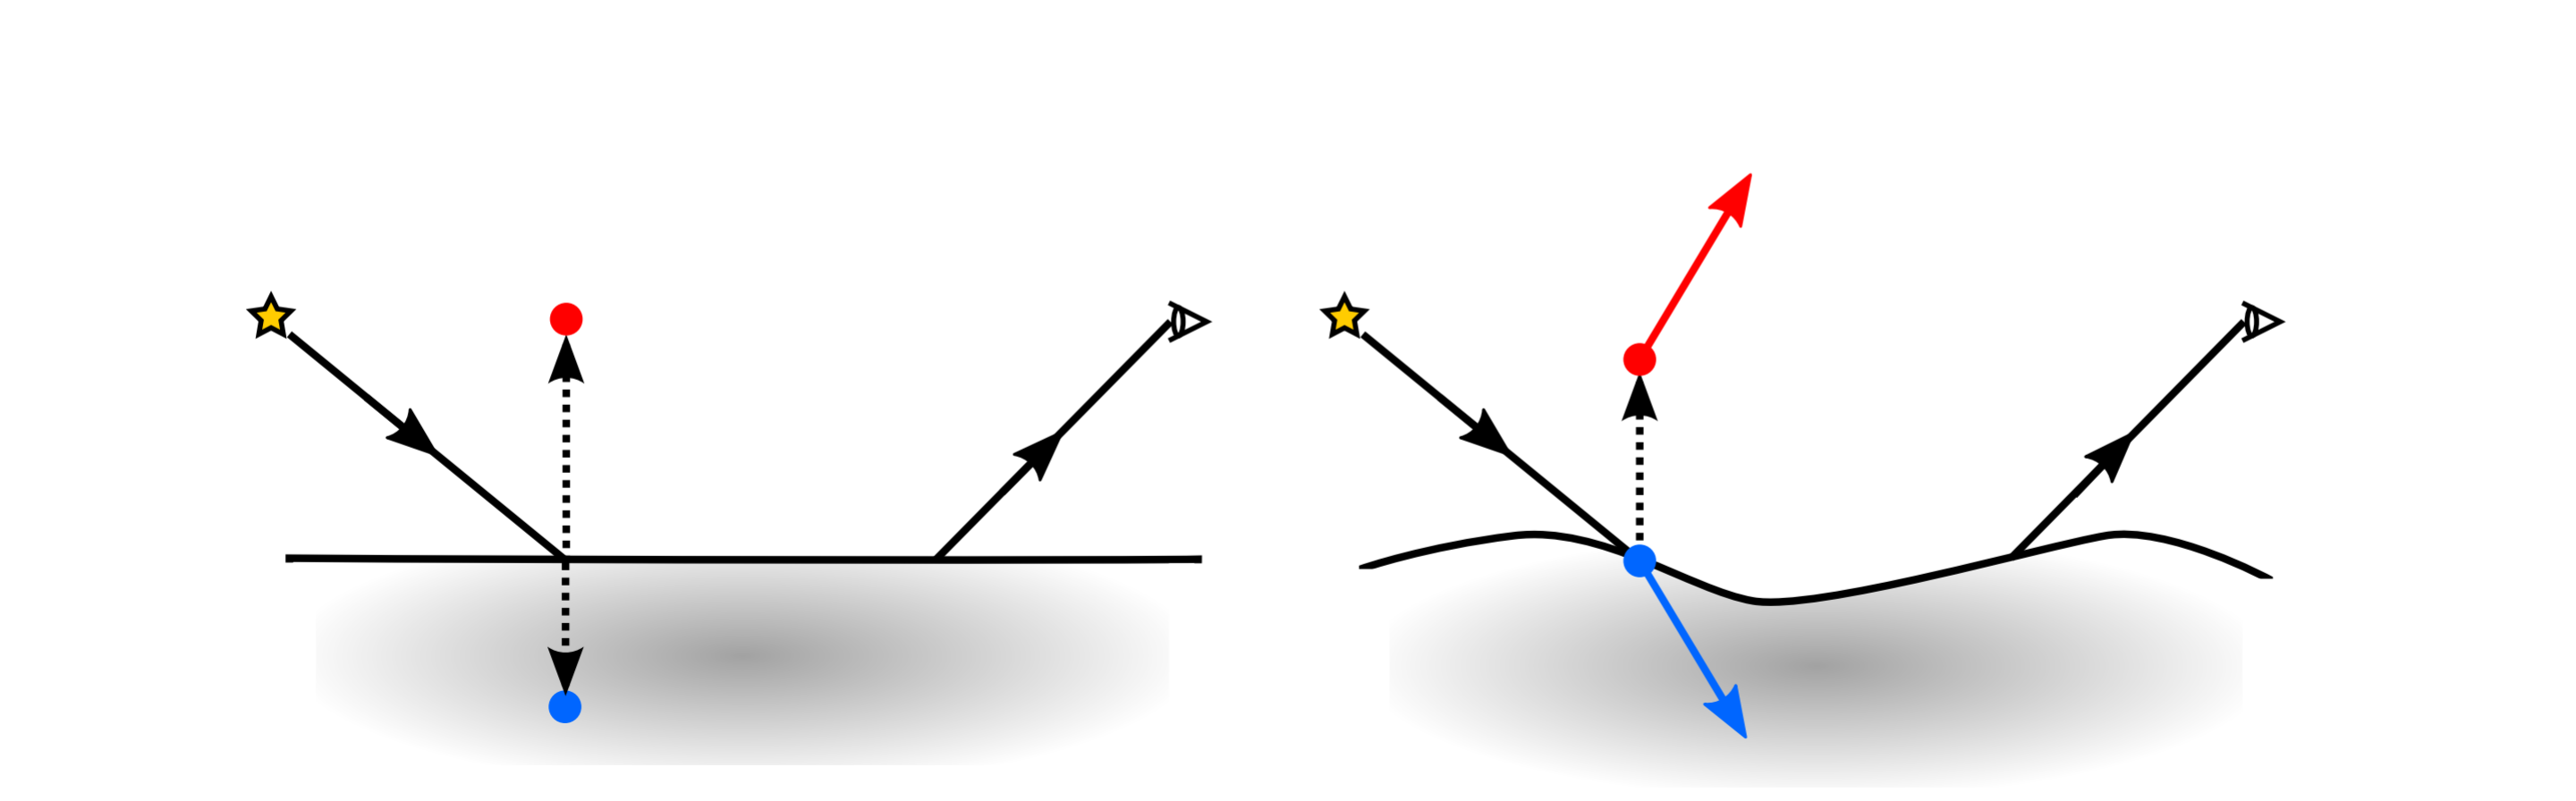 directional_dipole.png